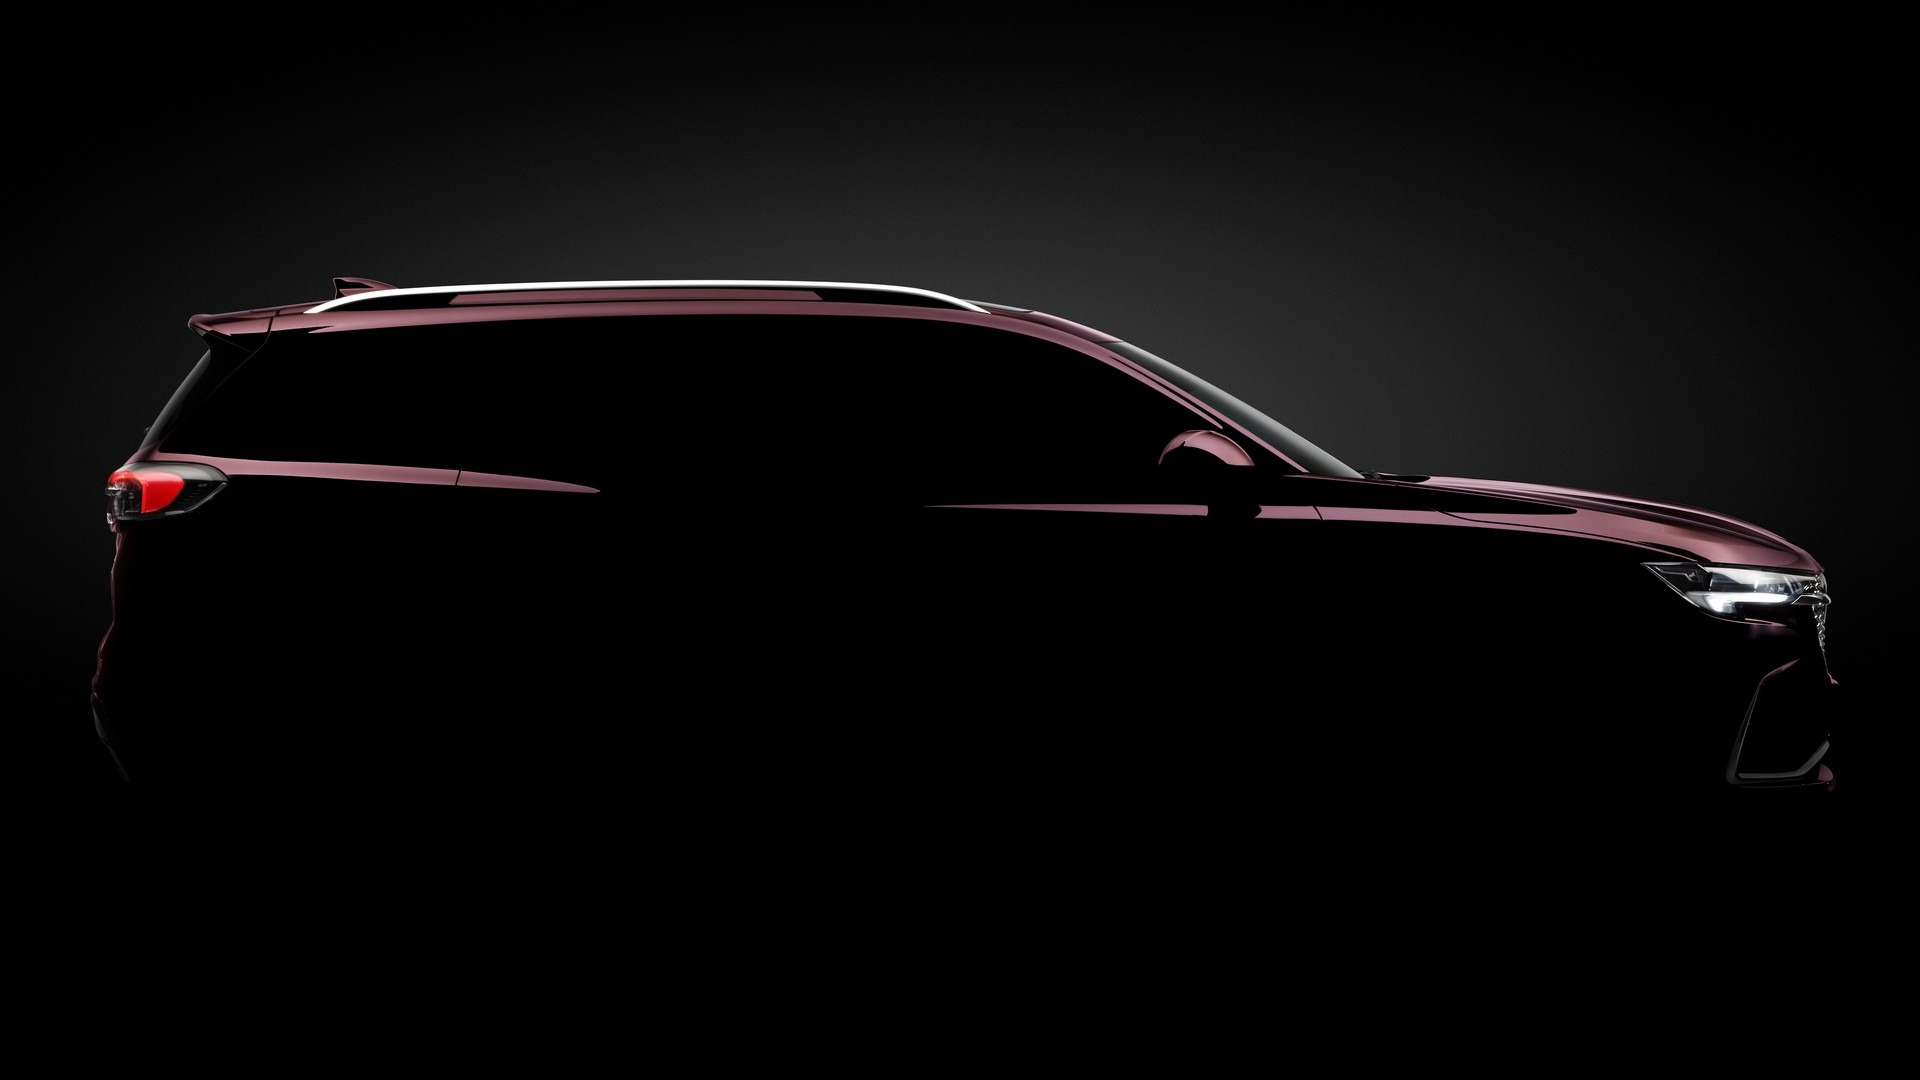 The upcoming mid-size SUV (shown on the titular pic) is being poised as an upmarket alternative to the Envision and Envision S models (shown in the video and the other photos). Stay tuned for the Auto Shanghai premiere later this month.